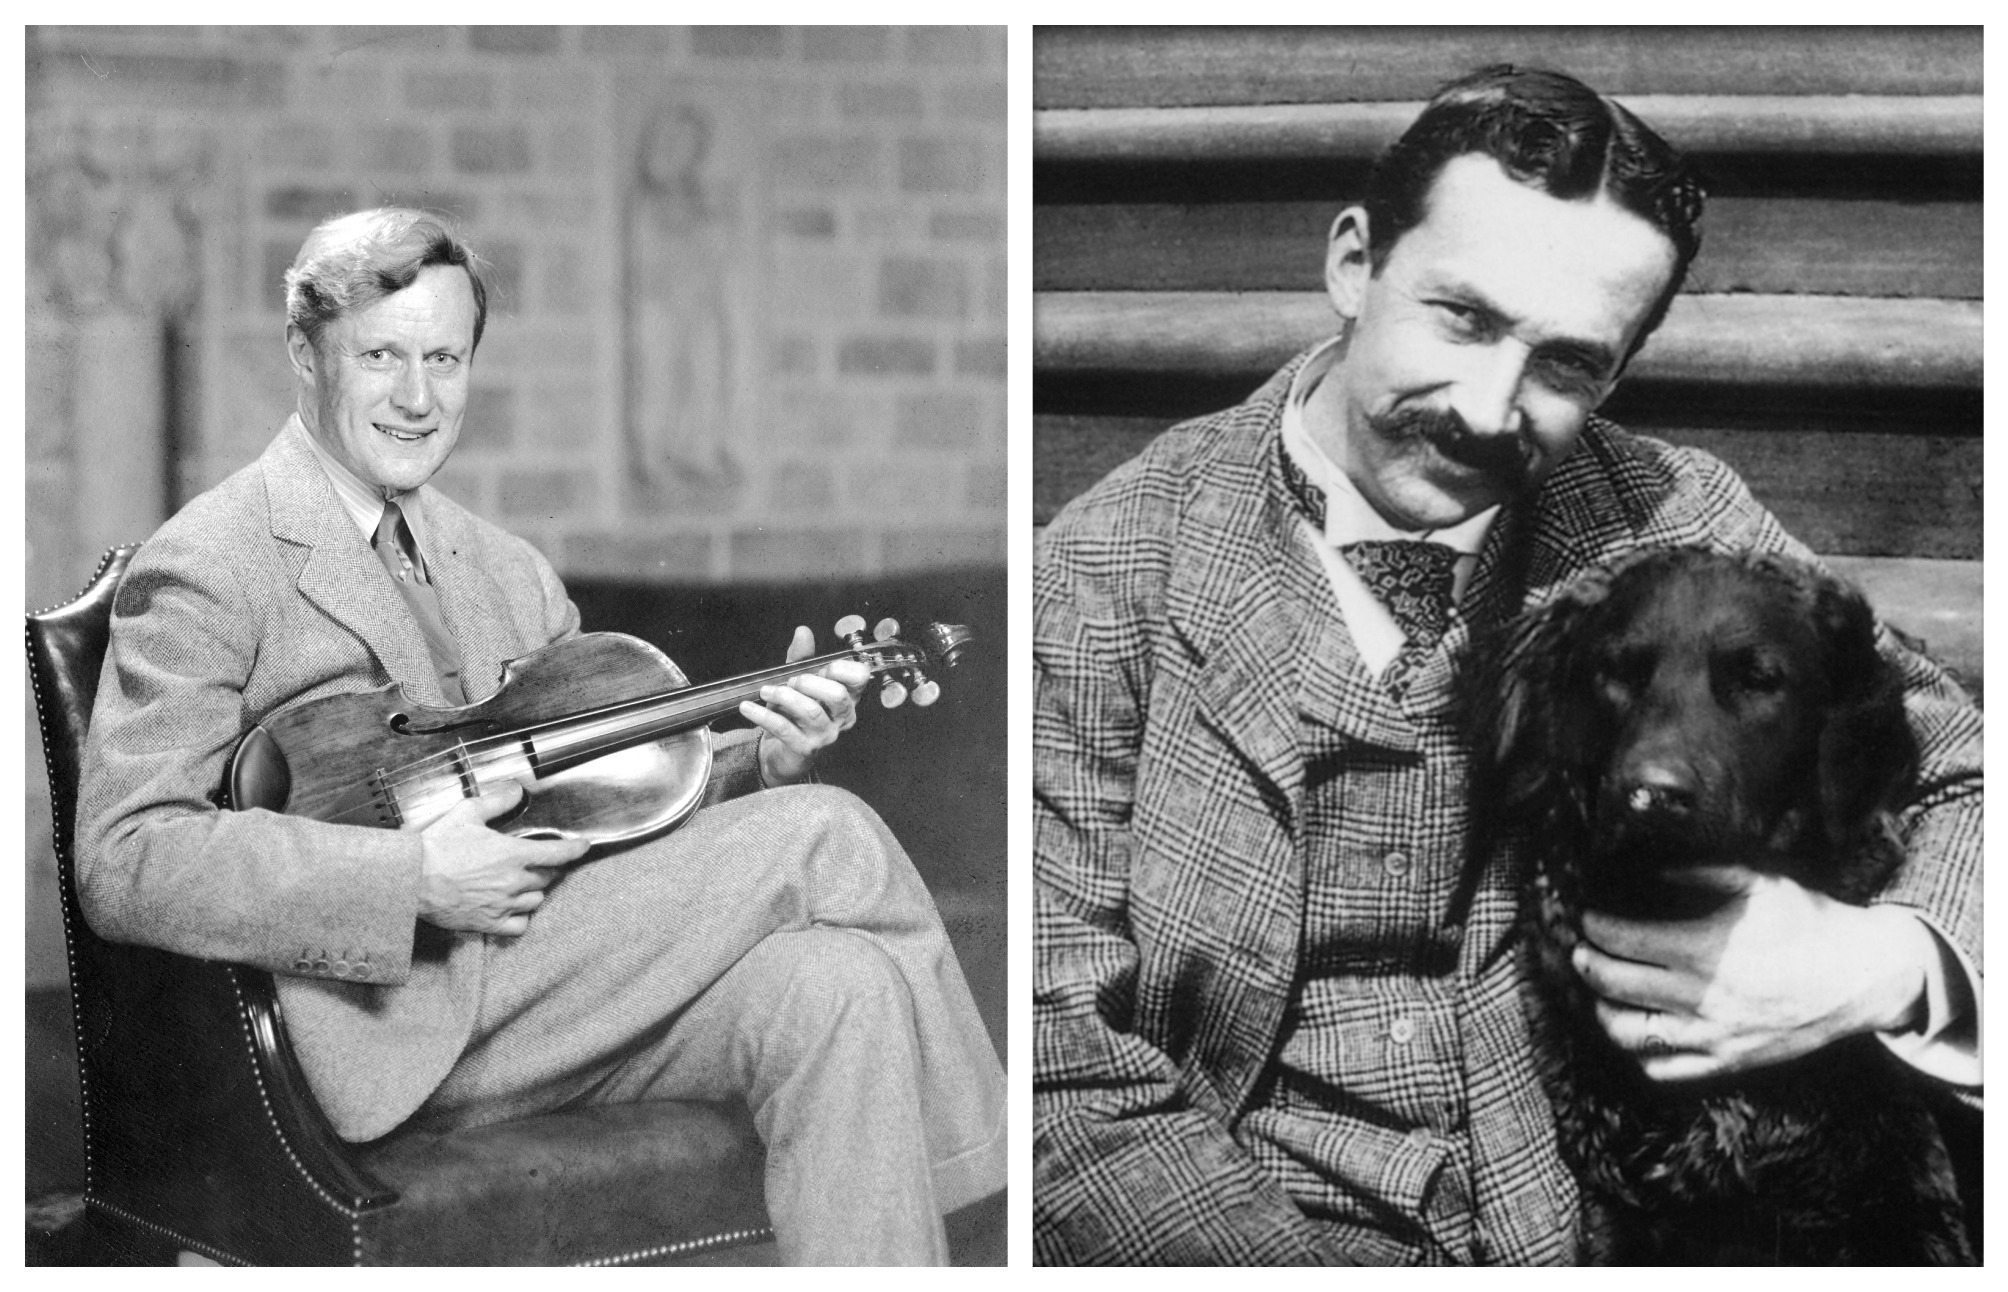 Figure 1: Raymond Pitcairn (left) seated in the Great Hall of Glencairn with his viola; Henry Chapman Mercer with his beloved dog, Rollo.